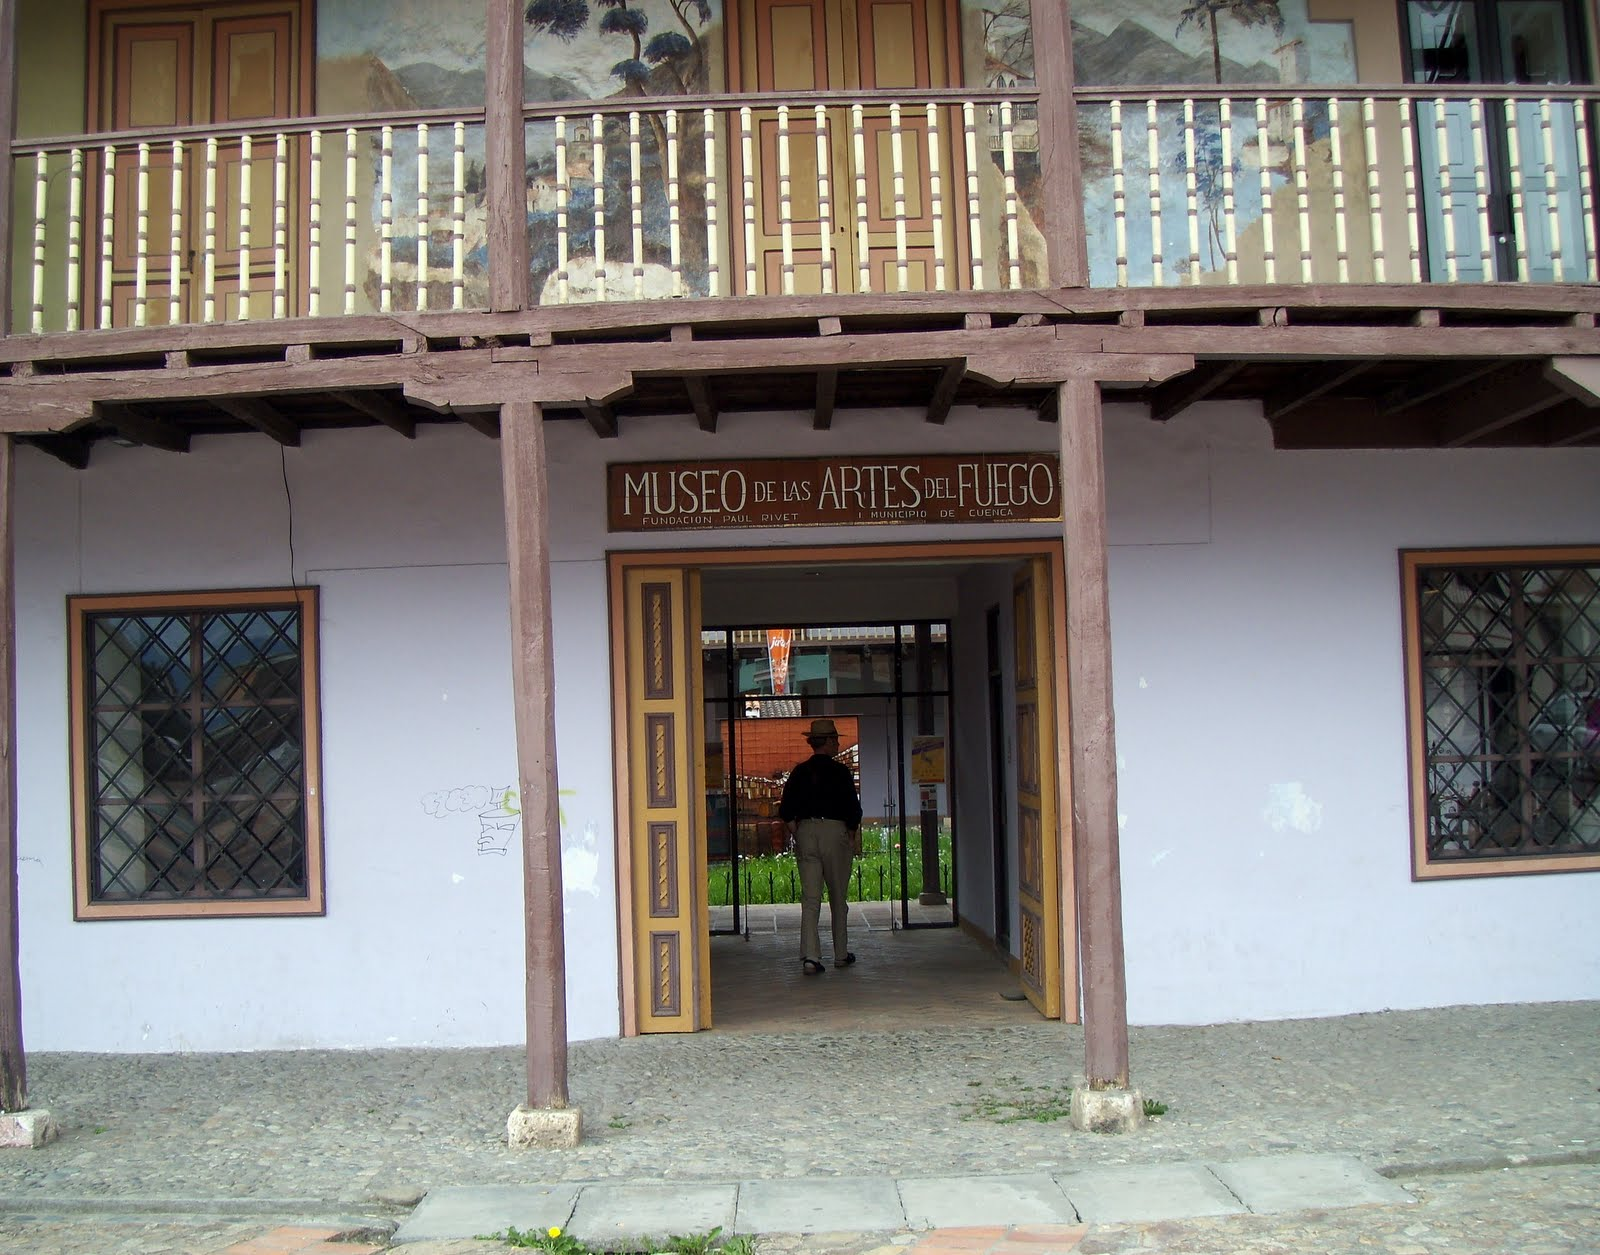 Front entrance of Museo de las Artes del Fuego, May 2013. Photo Credit: RichAndNancy blog.